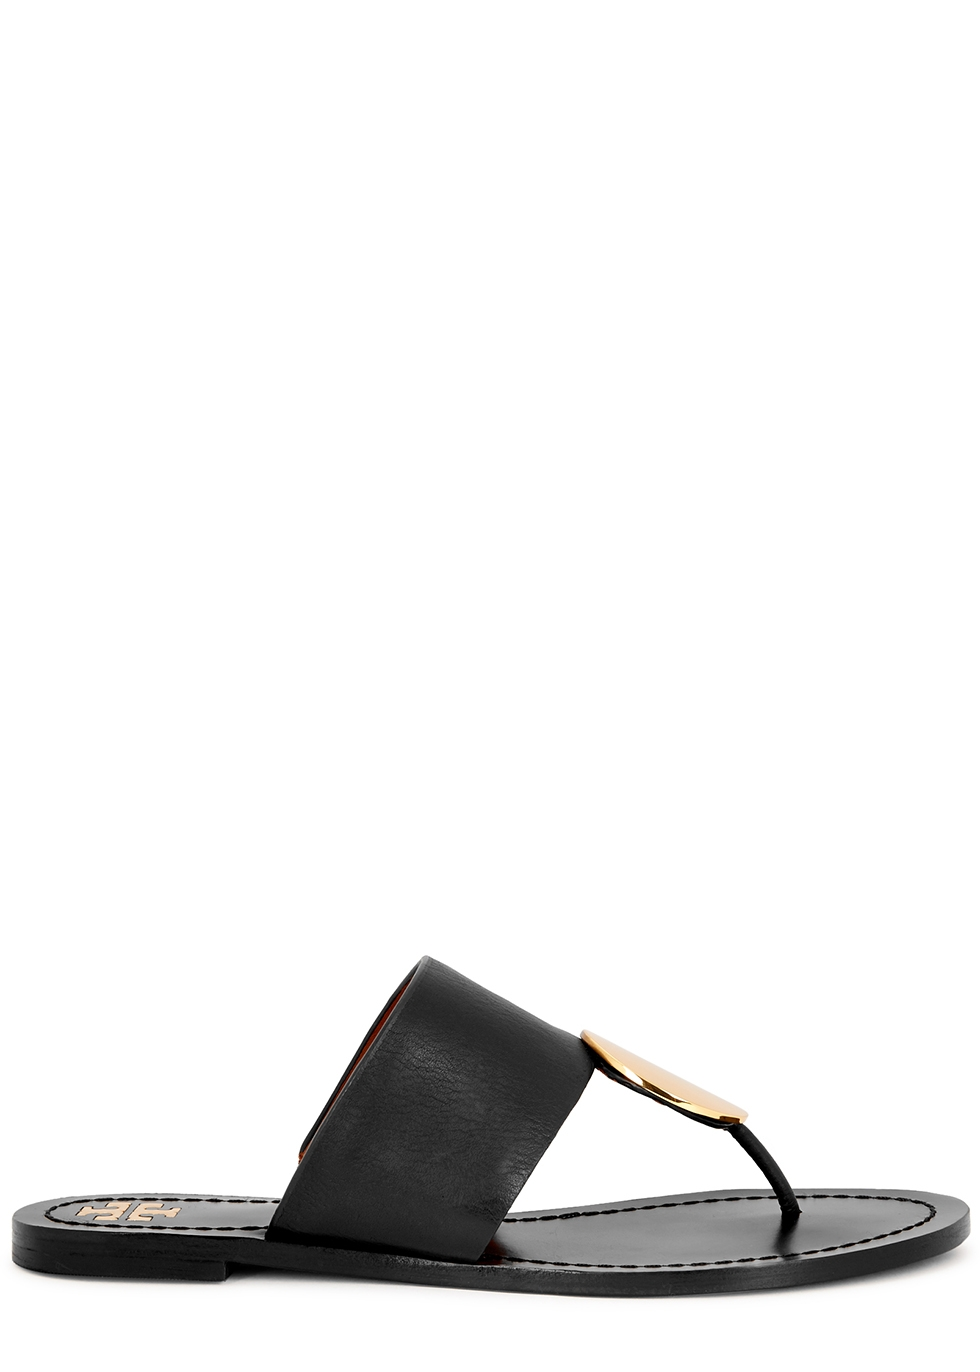 Tory Burch Patos black leather sandals